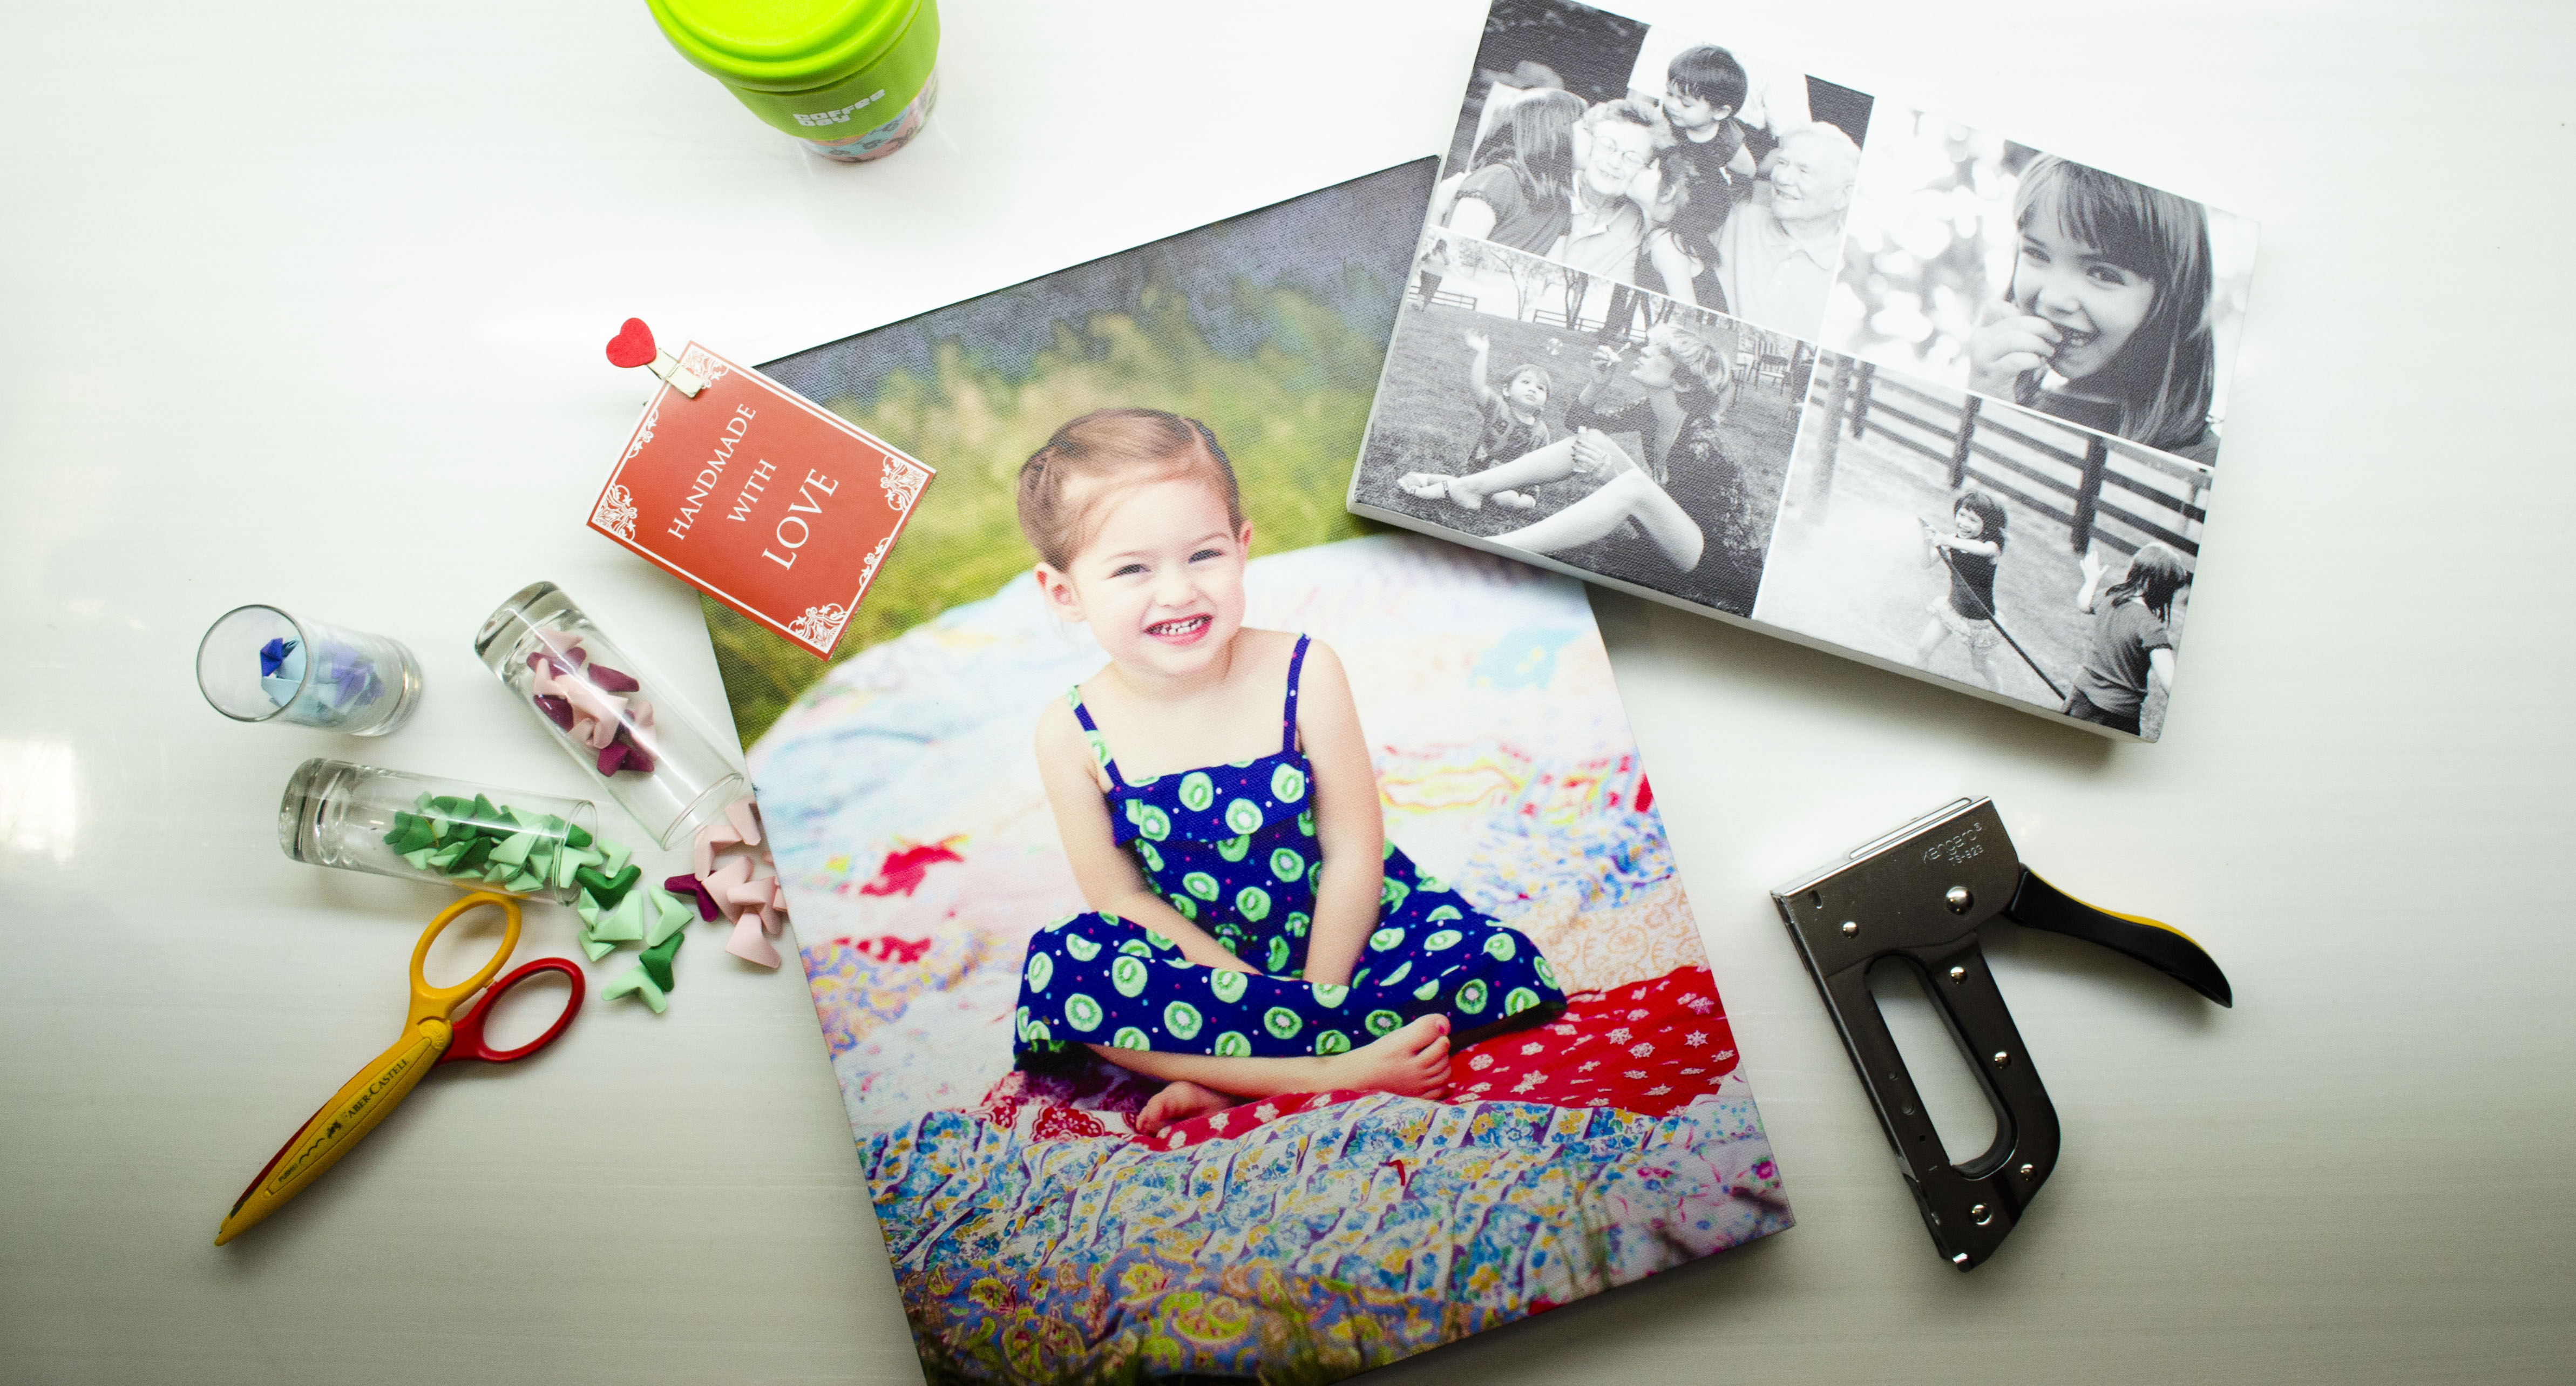 6 Great Gift Ideas for your Loved Ones | CanvasChamp